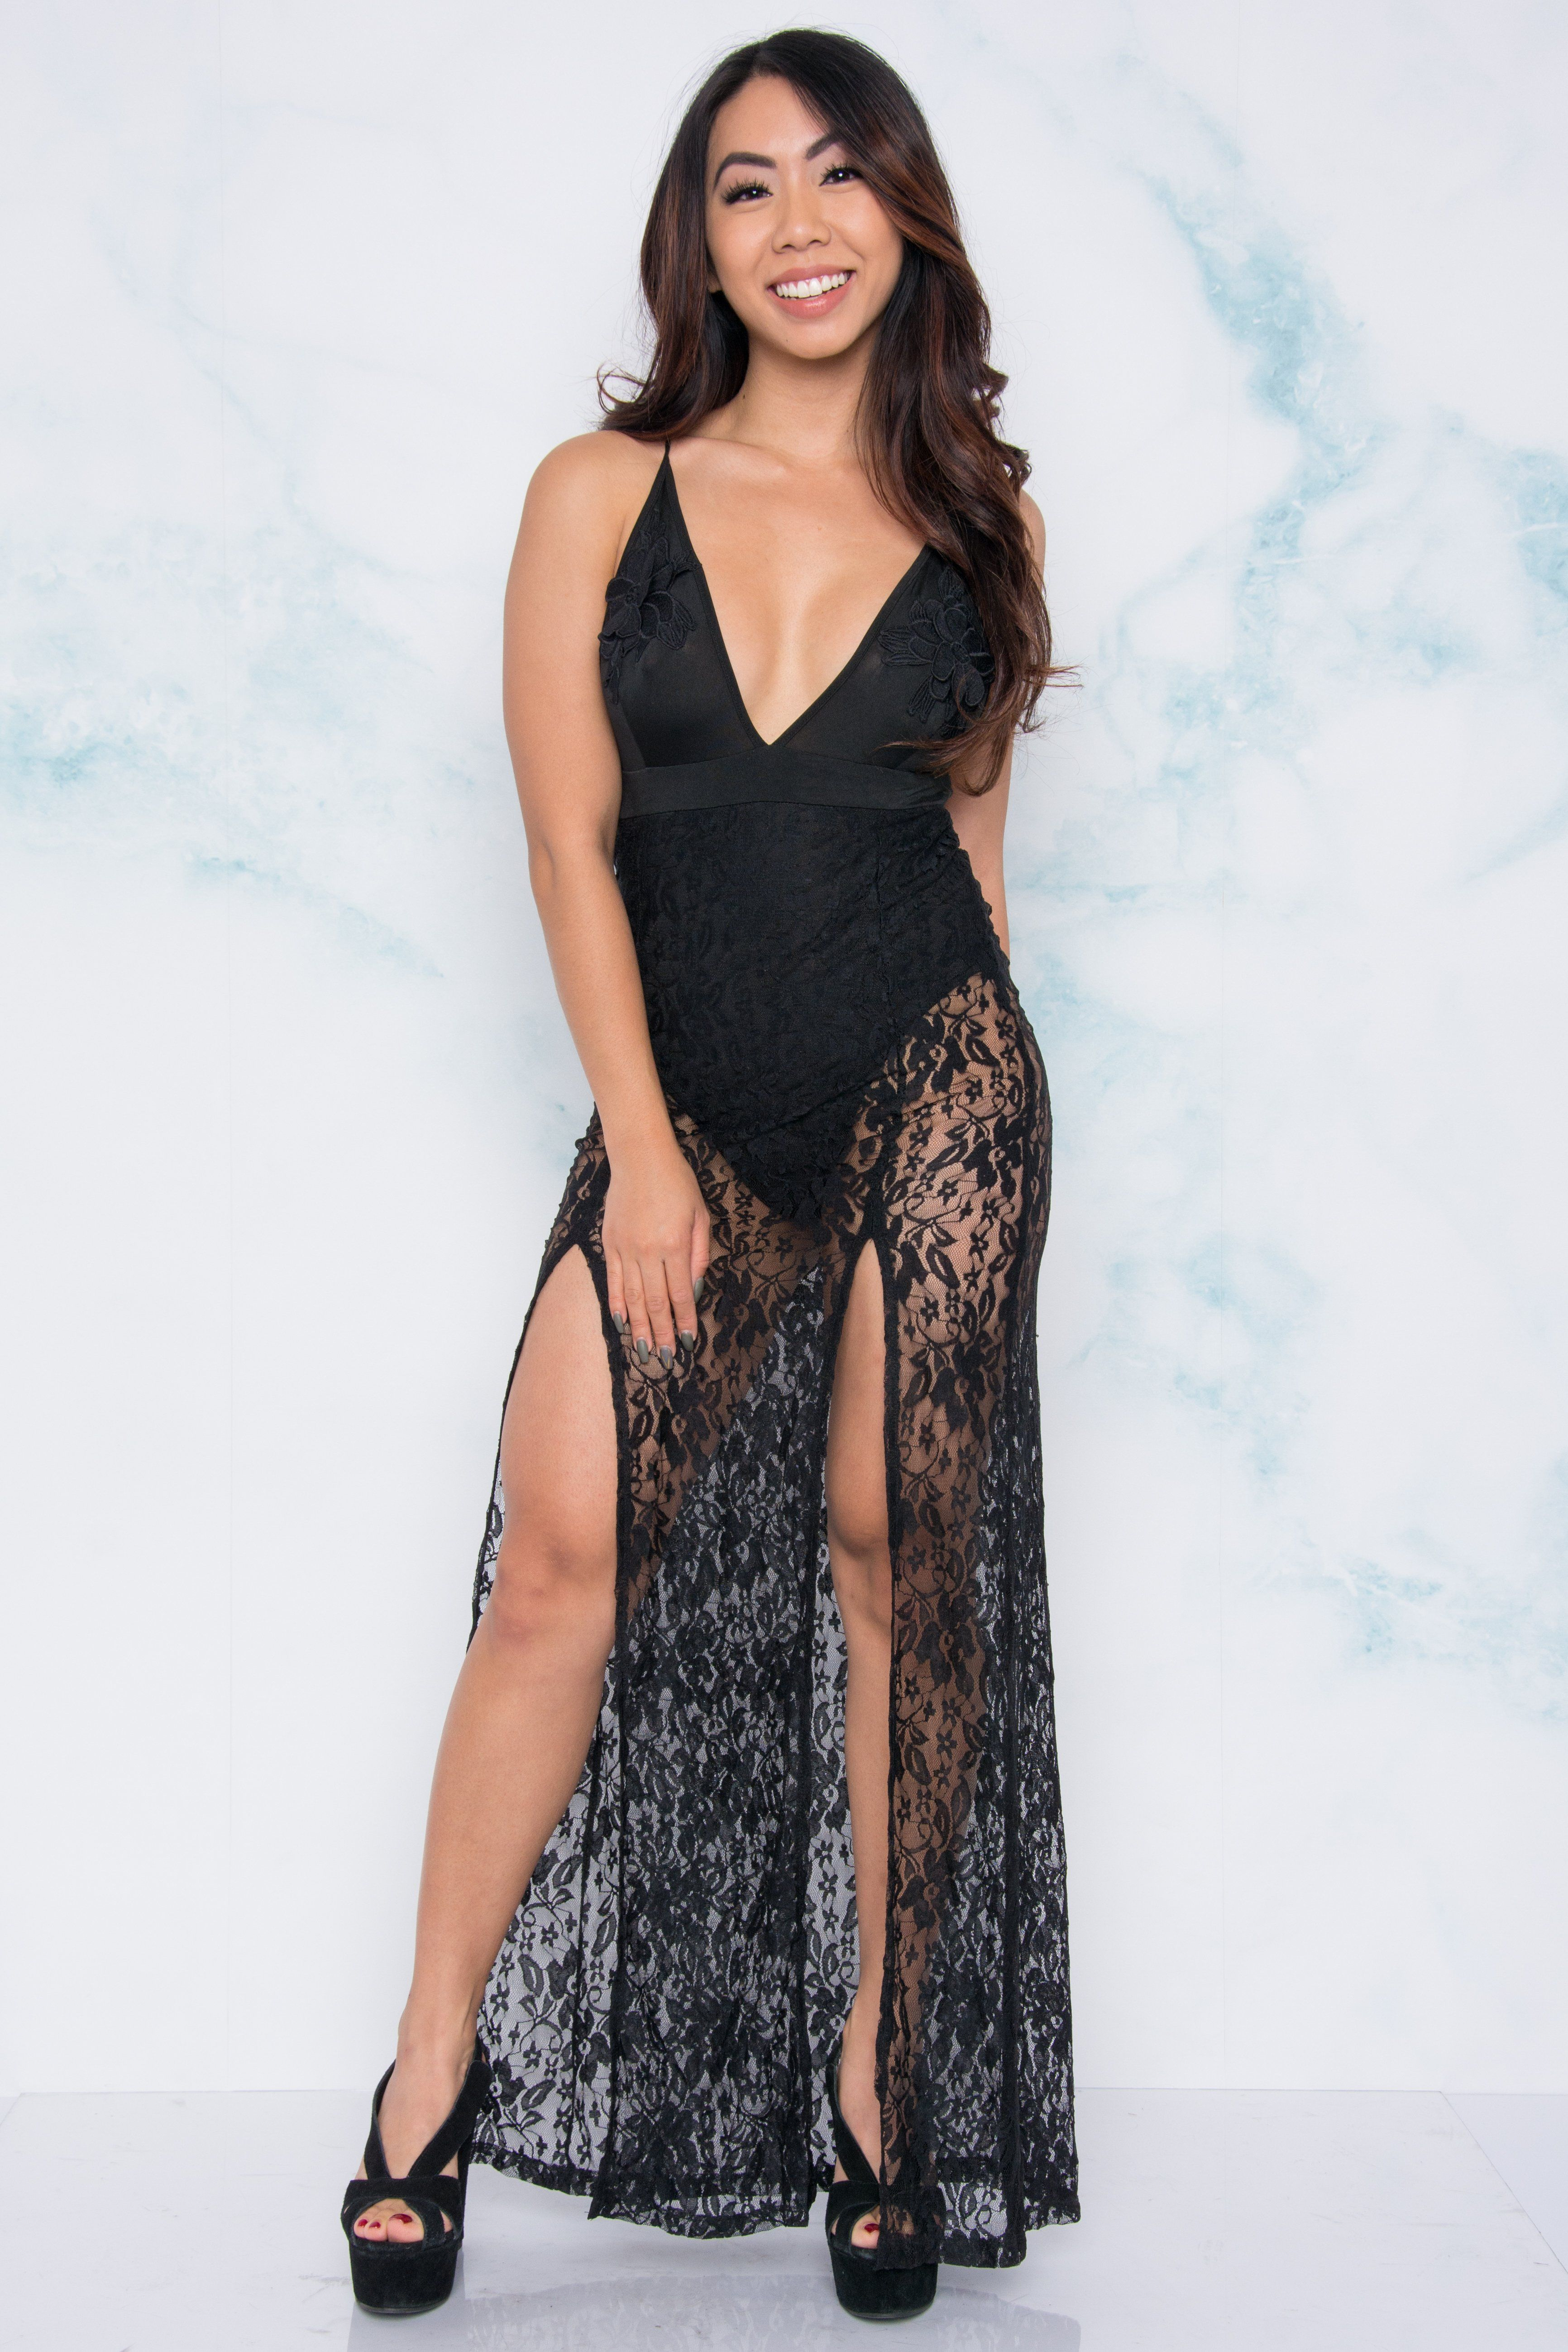 Victoria lace maxi dress black things to do for tiara